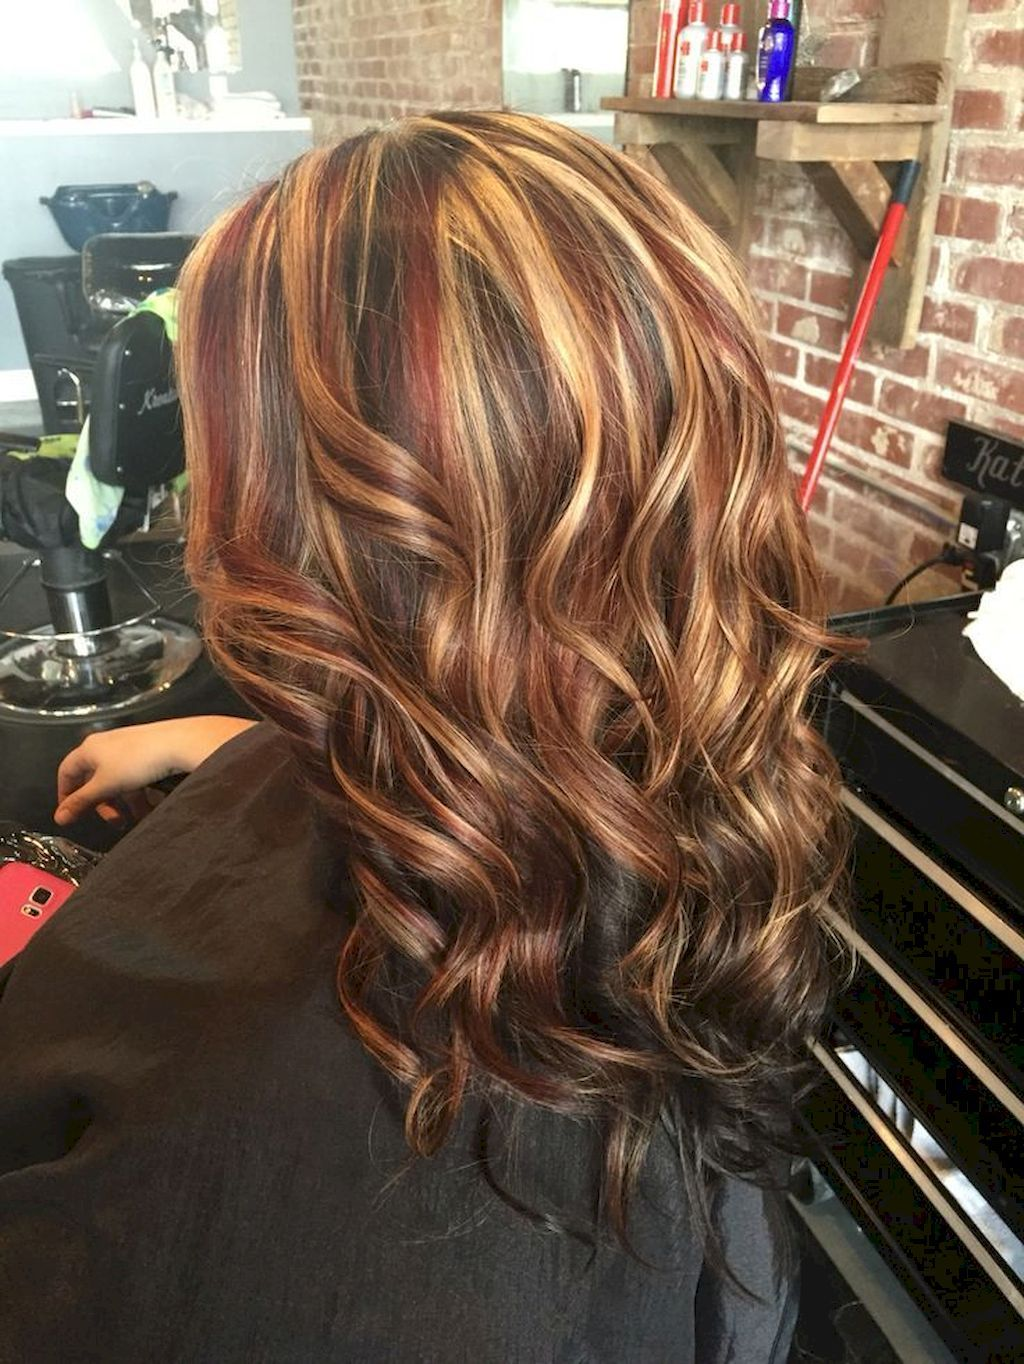 36 Unique Dark Brown Hair Color With Highlights Ideas Brown